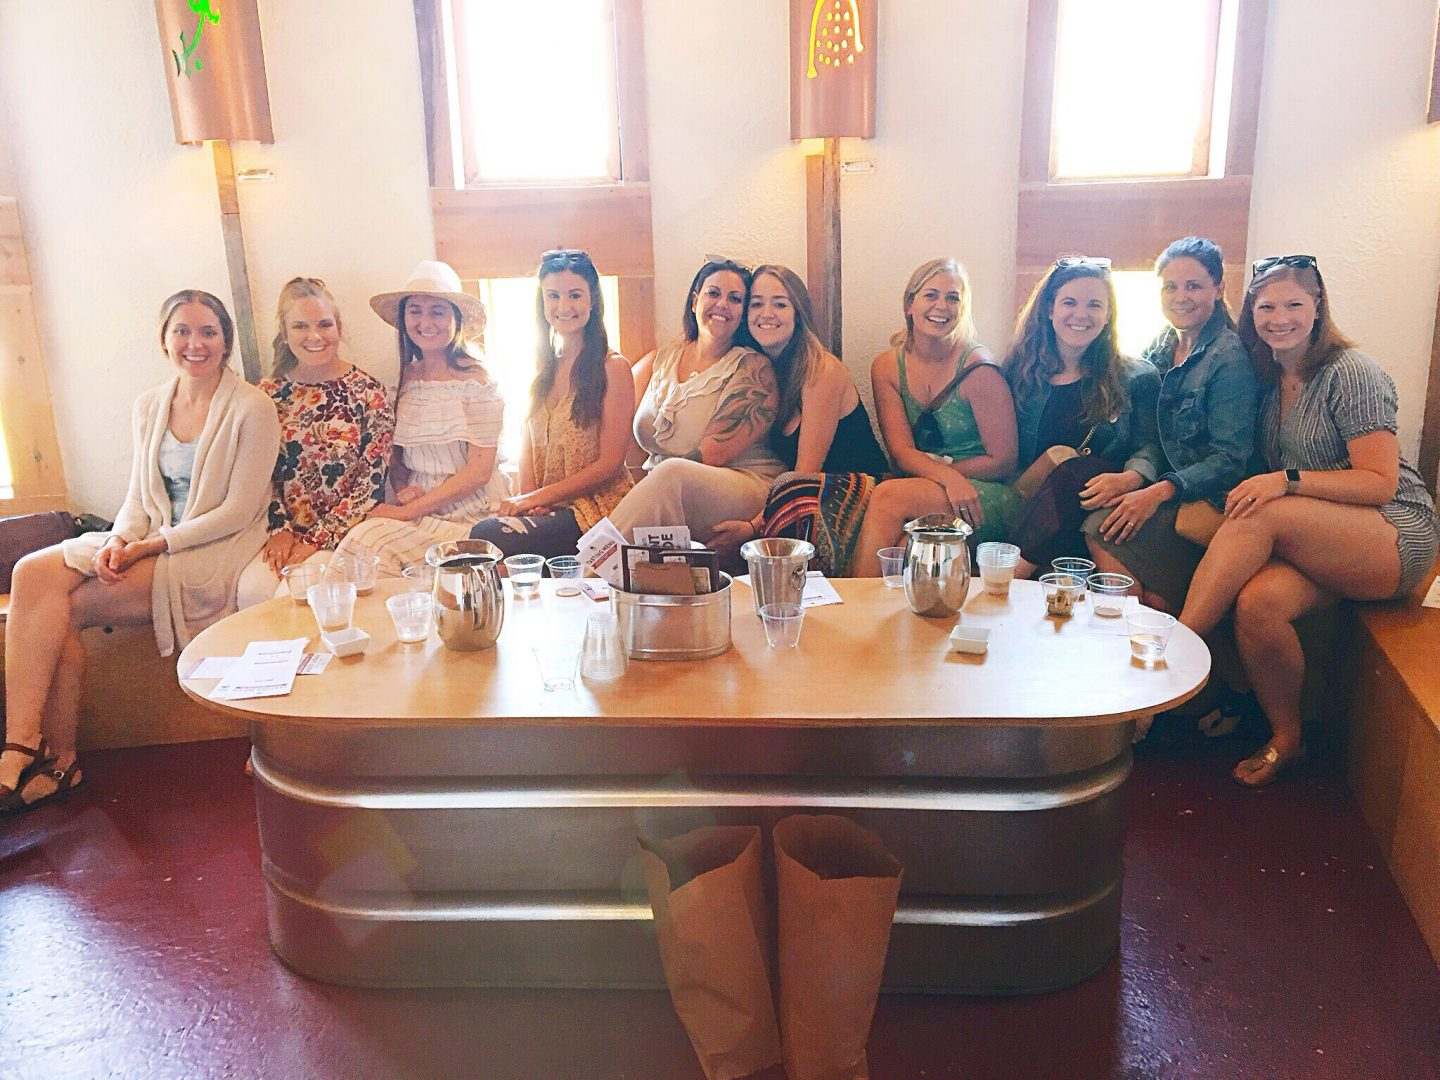 Bachelorette party that's affordable and fun, lake michigan, union pier michigan, michigan bachelorette party, union pier winery, round barn tasting room, round barn tasting room michigan